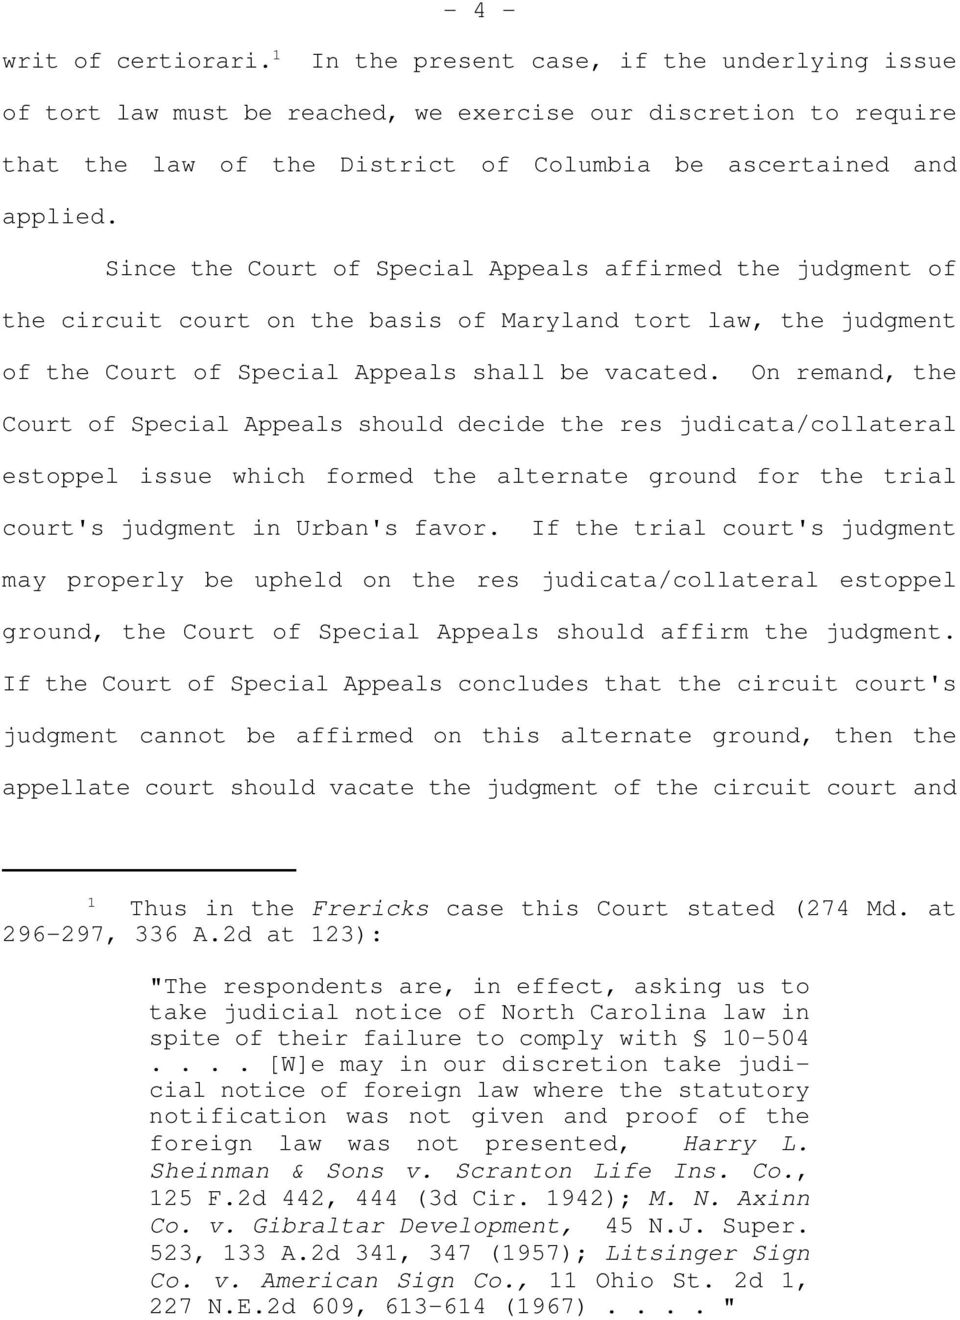 Since the Court of Special Appeals affirmed the judgment of the circuit court on the basis of Maryland tort law, the judgment of the Court of Special Appeals shall be vacated.